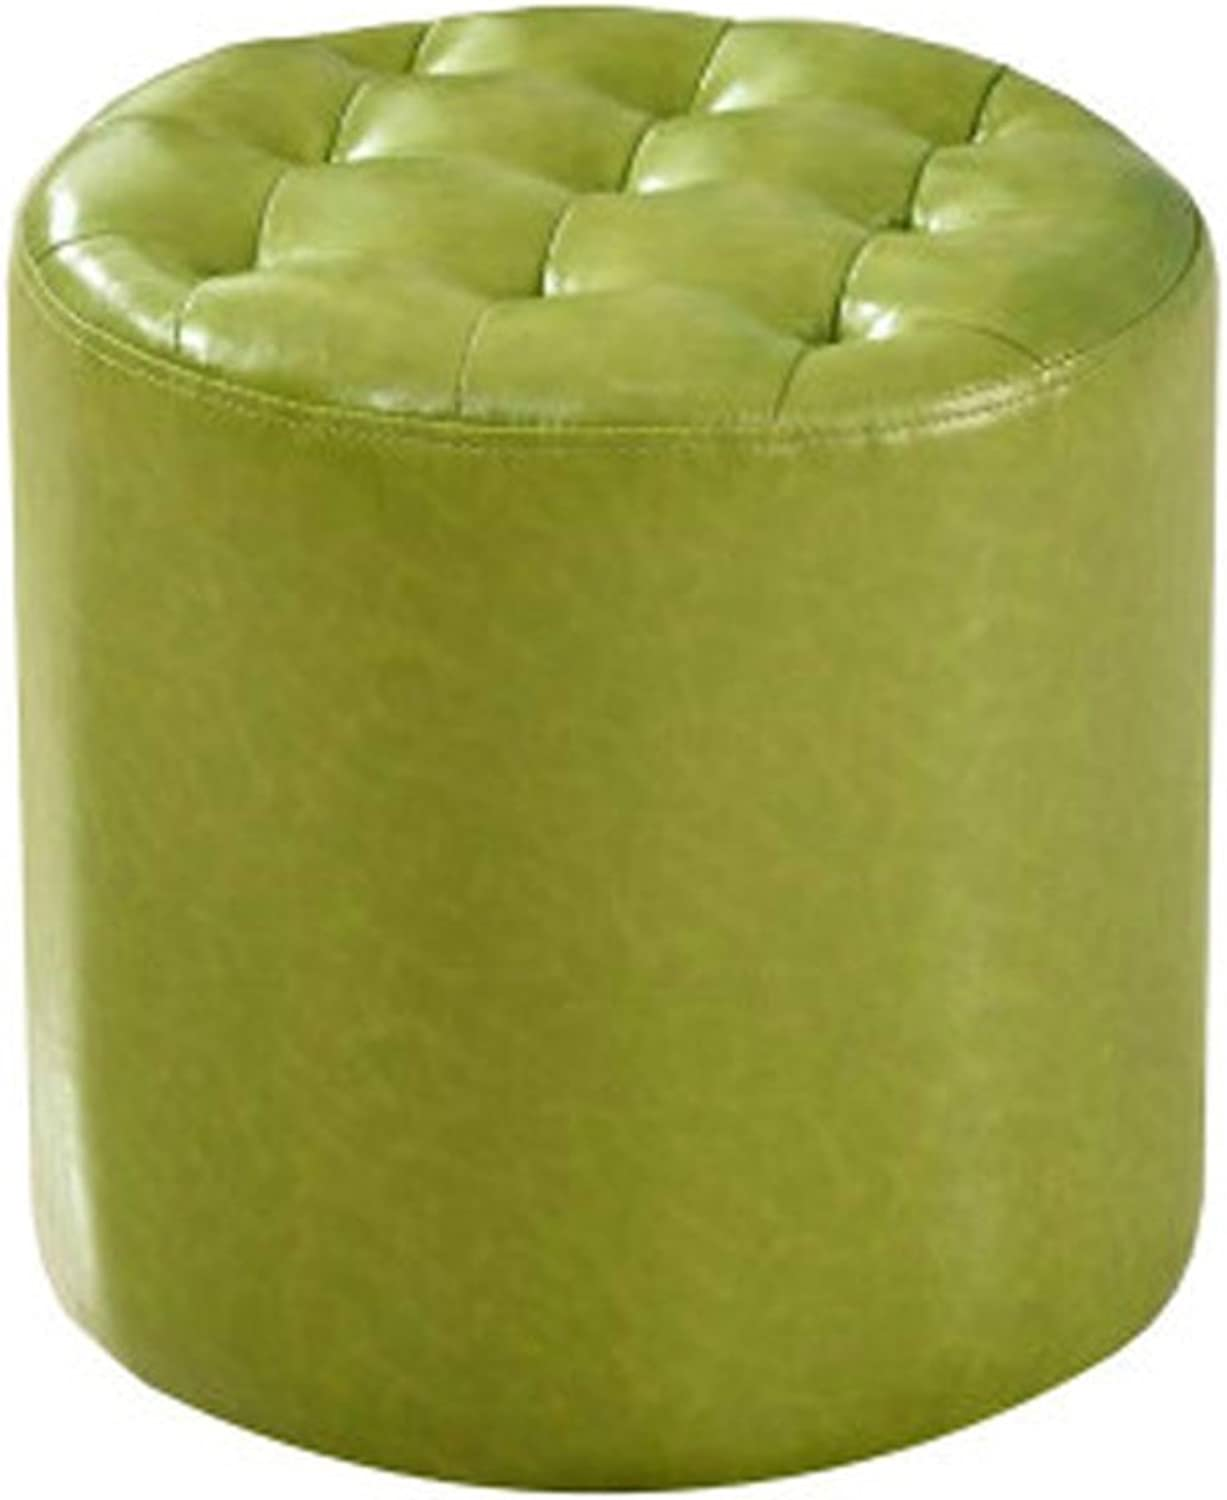 Leather Stool Sofa Stool Leather Stool Square Stool shoes Bench Coffee Table Stool Living Room Small Stool Makeup Stool(Green) 0520 (color   Round)